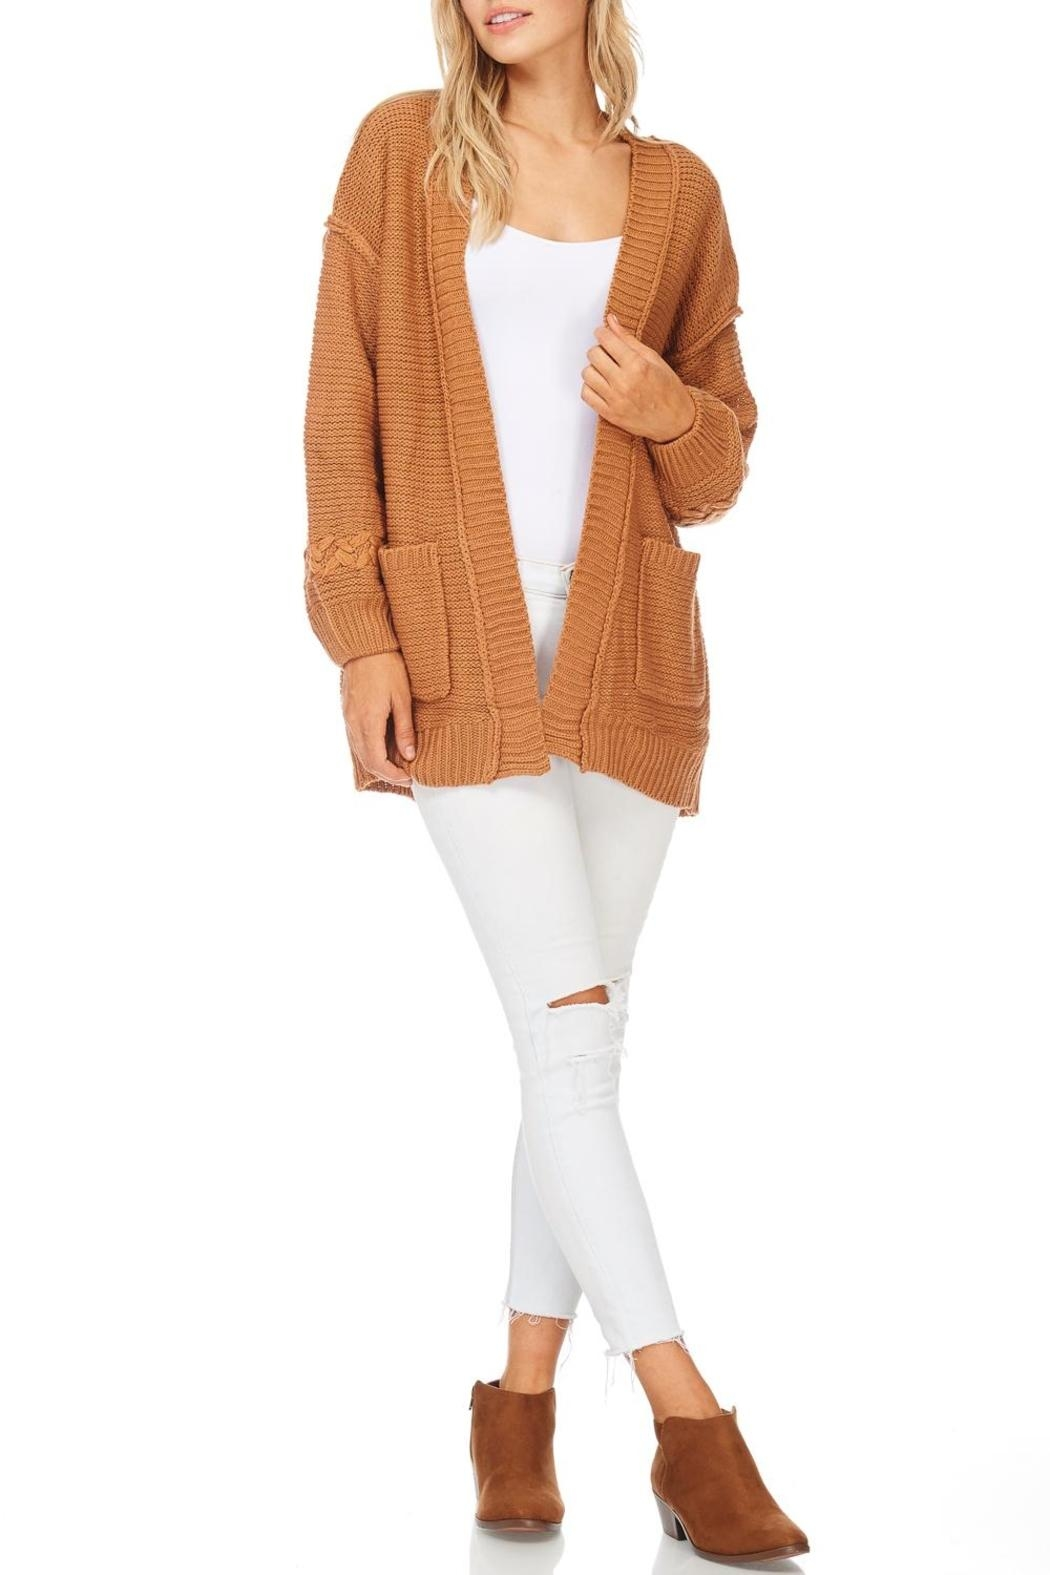 LoveRiche Camel Boyfriend Cardigan - Main Image